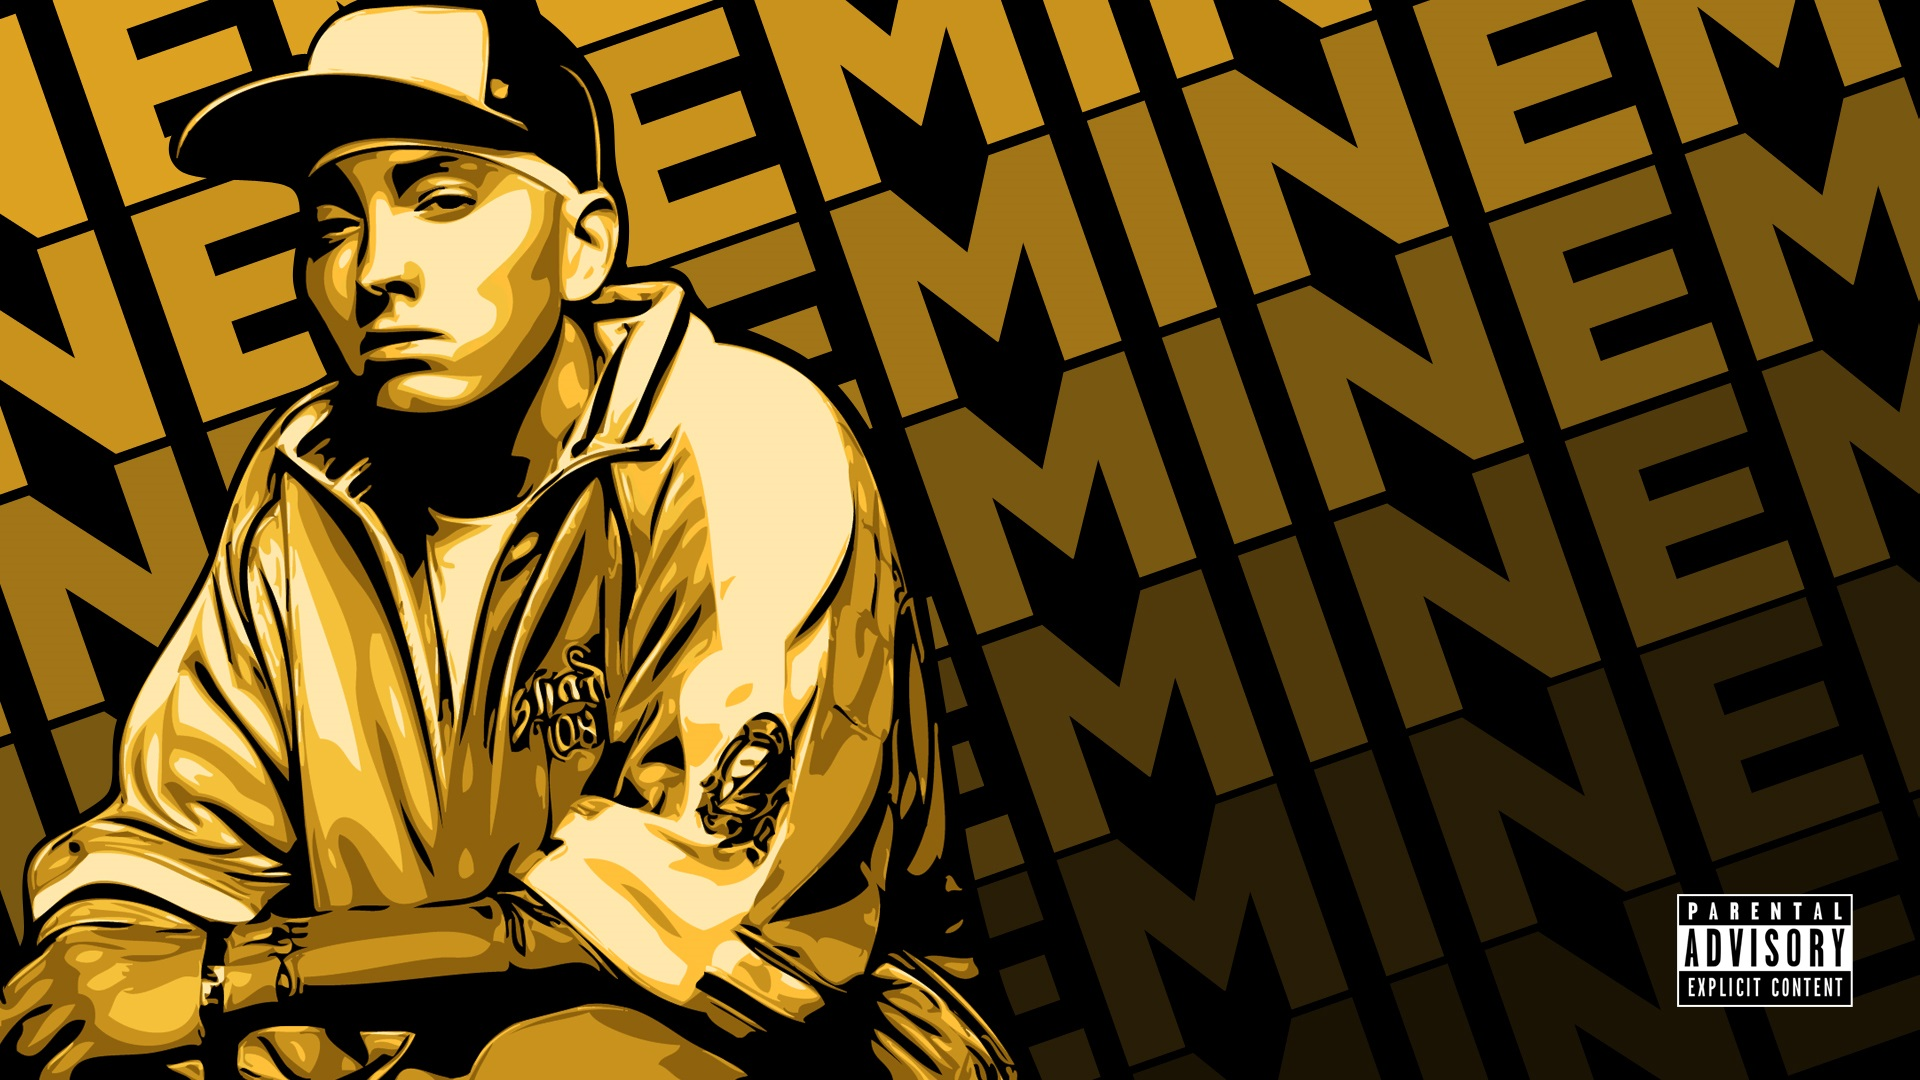 Eminem Wallpaper 9